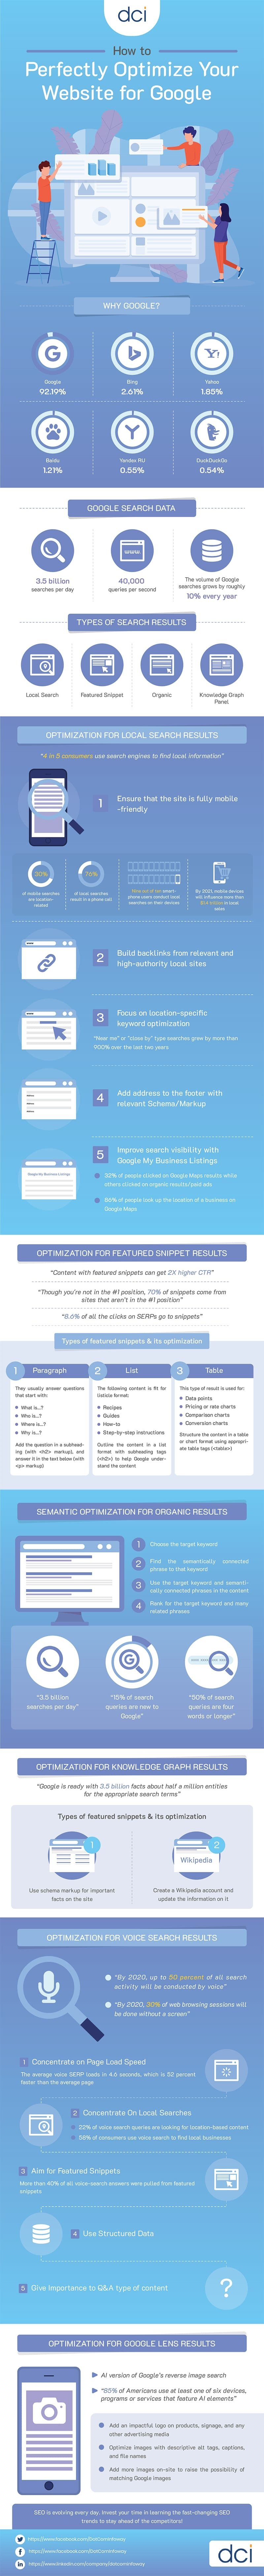 Infographic lists ways to maximize your search results